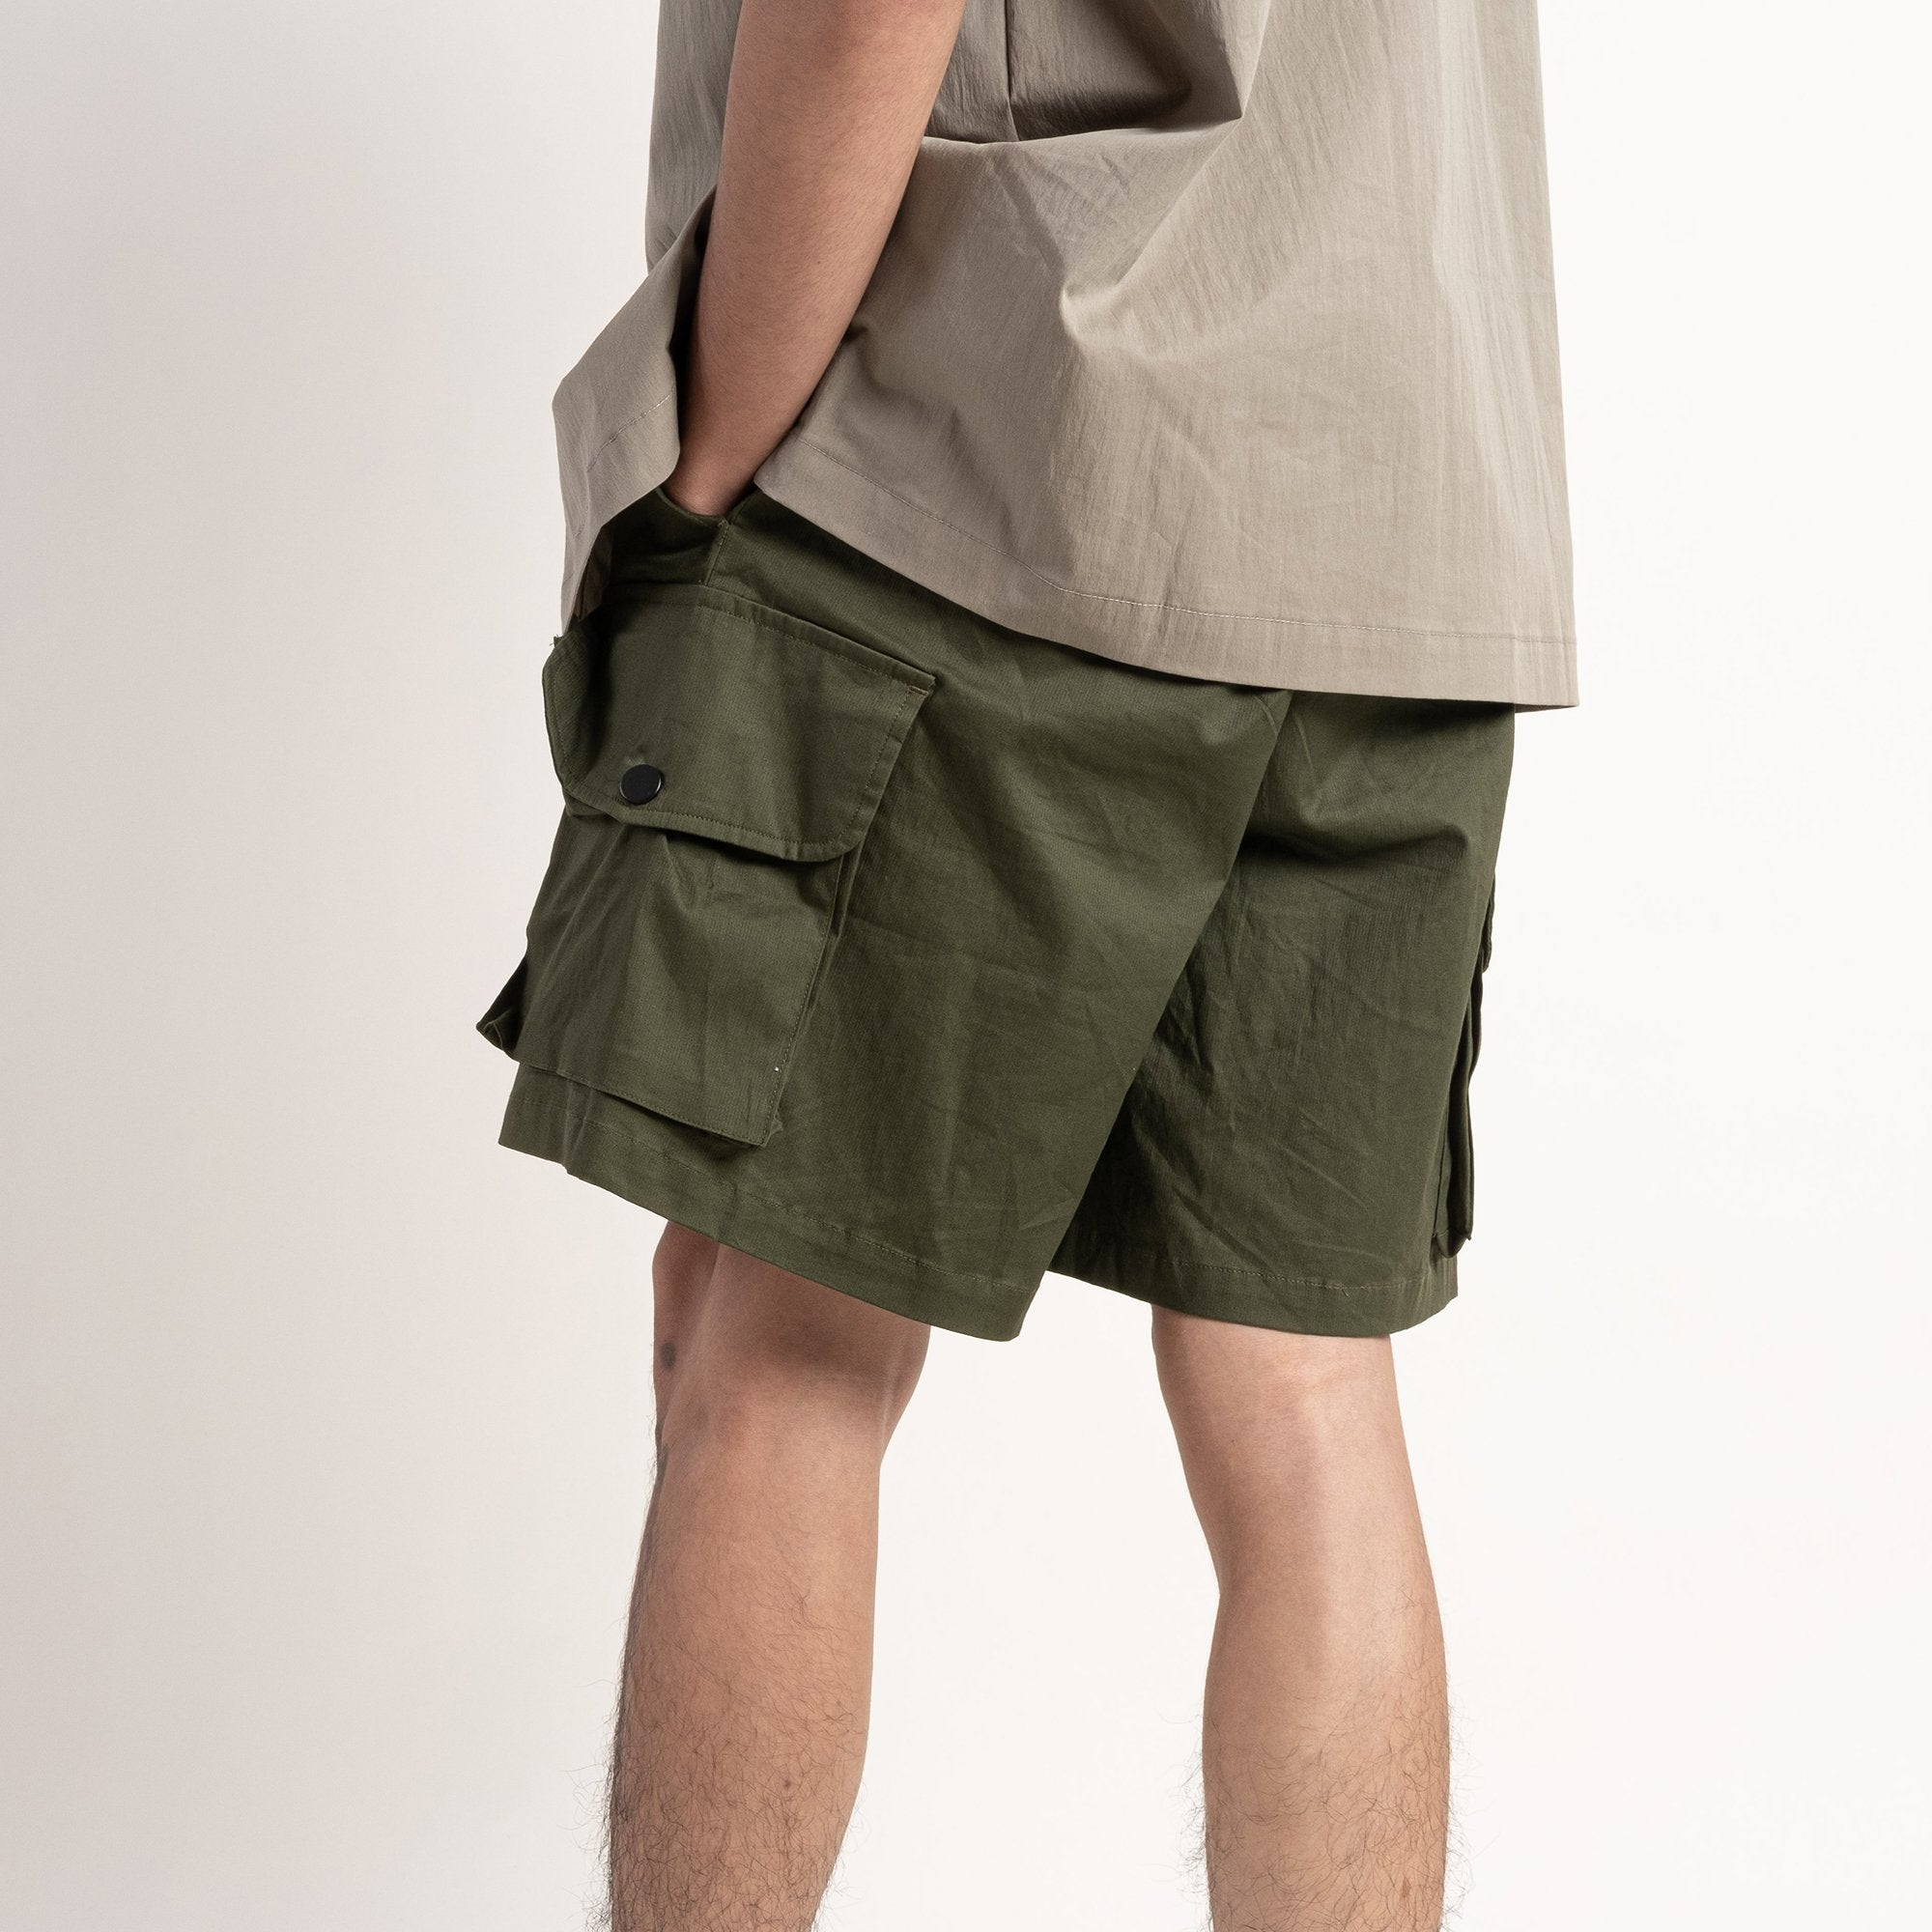 Pockets Shorts - olive